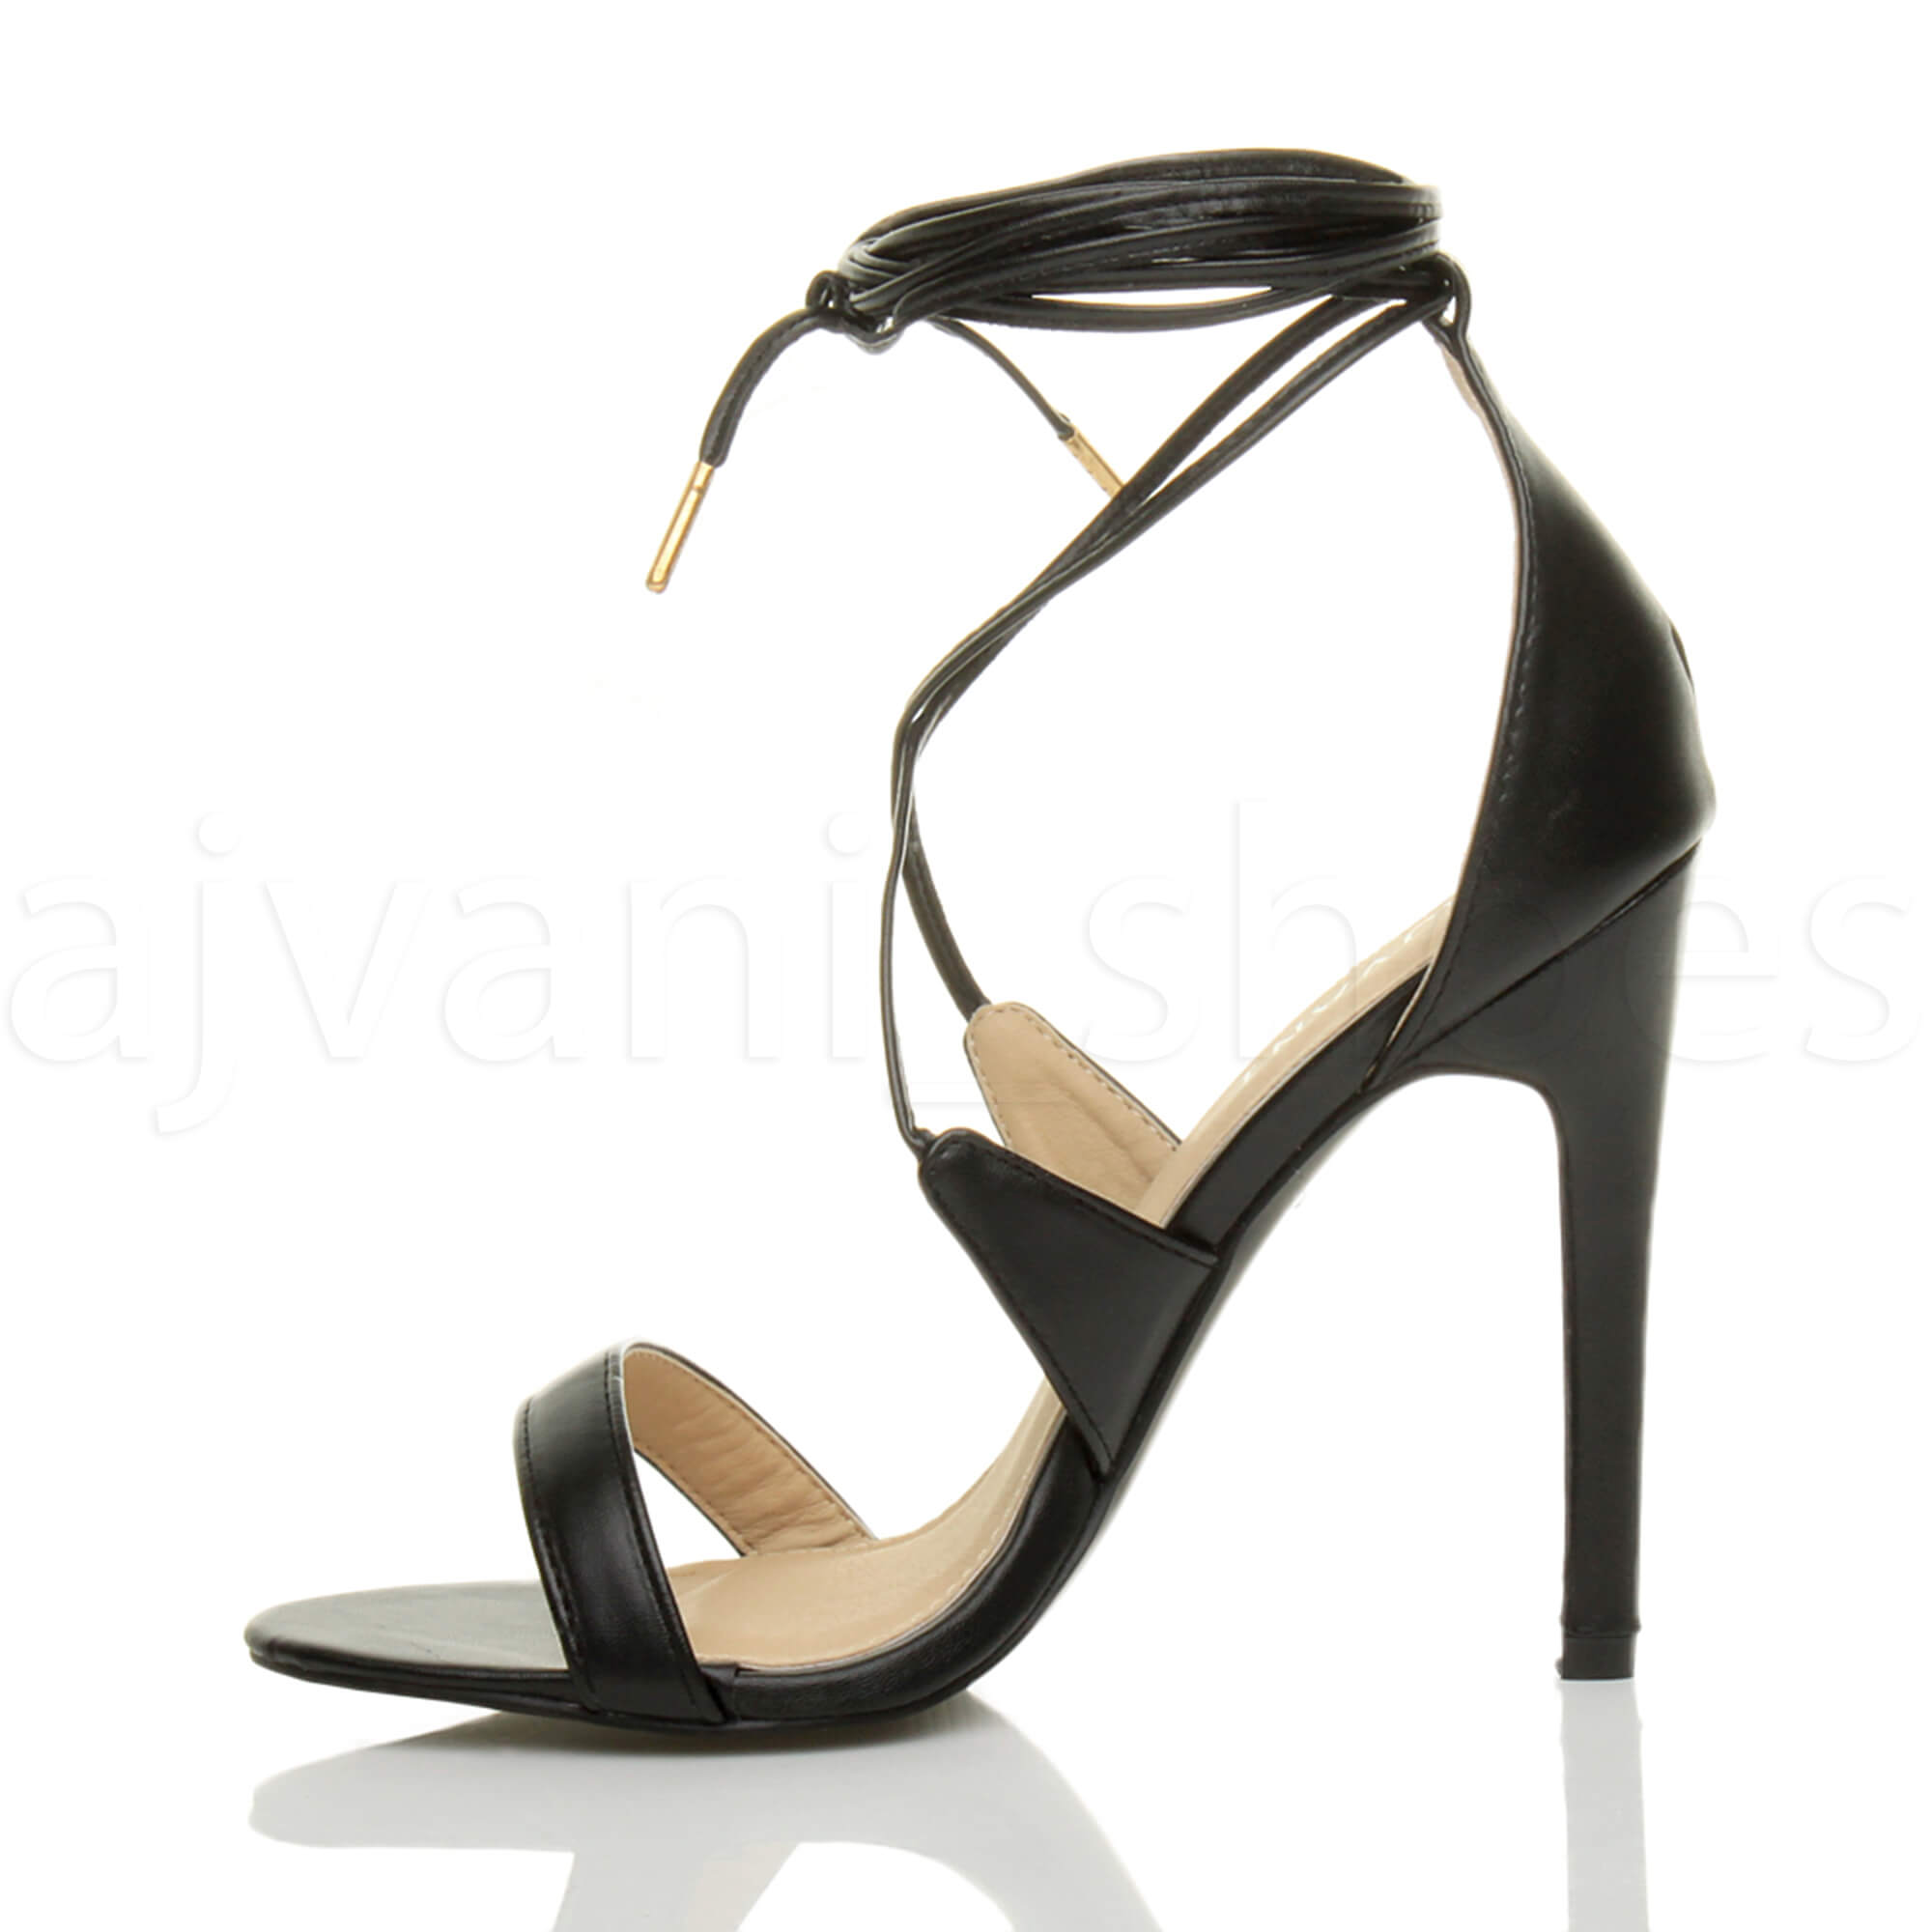 WOMENS-LADIES-HIGH-HEEL-BARELY-THERE-STRAPPY-LACE-TIE-UP-SANDALS-SHOES-SIZE thumbnail 4